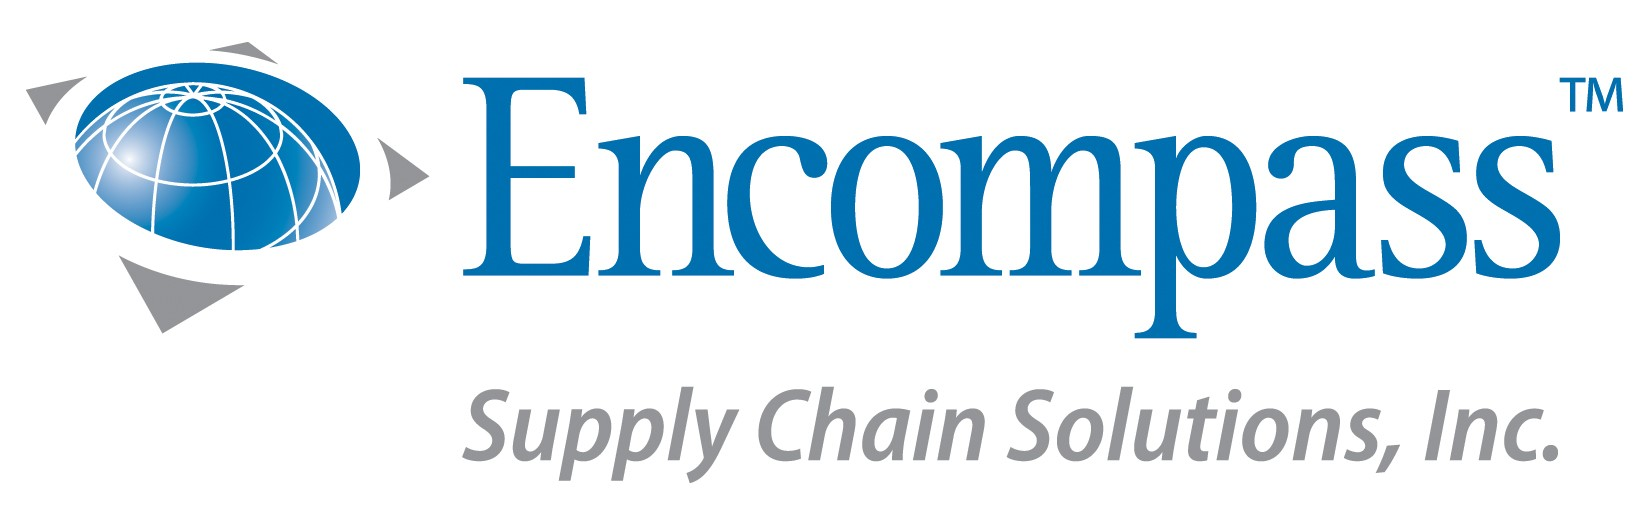 Encompass_SupplyChain logo_2014